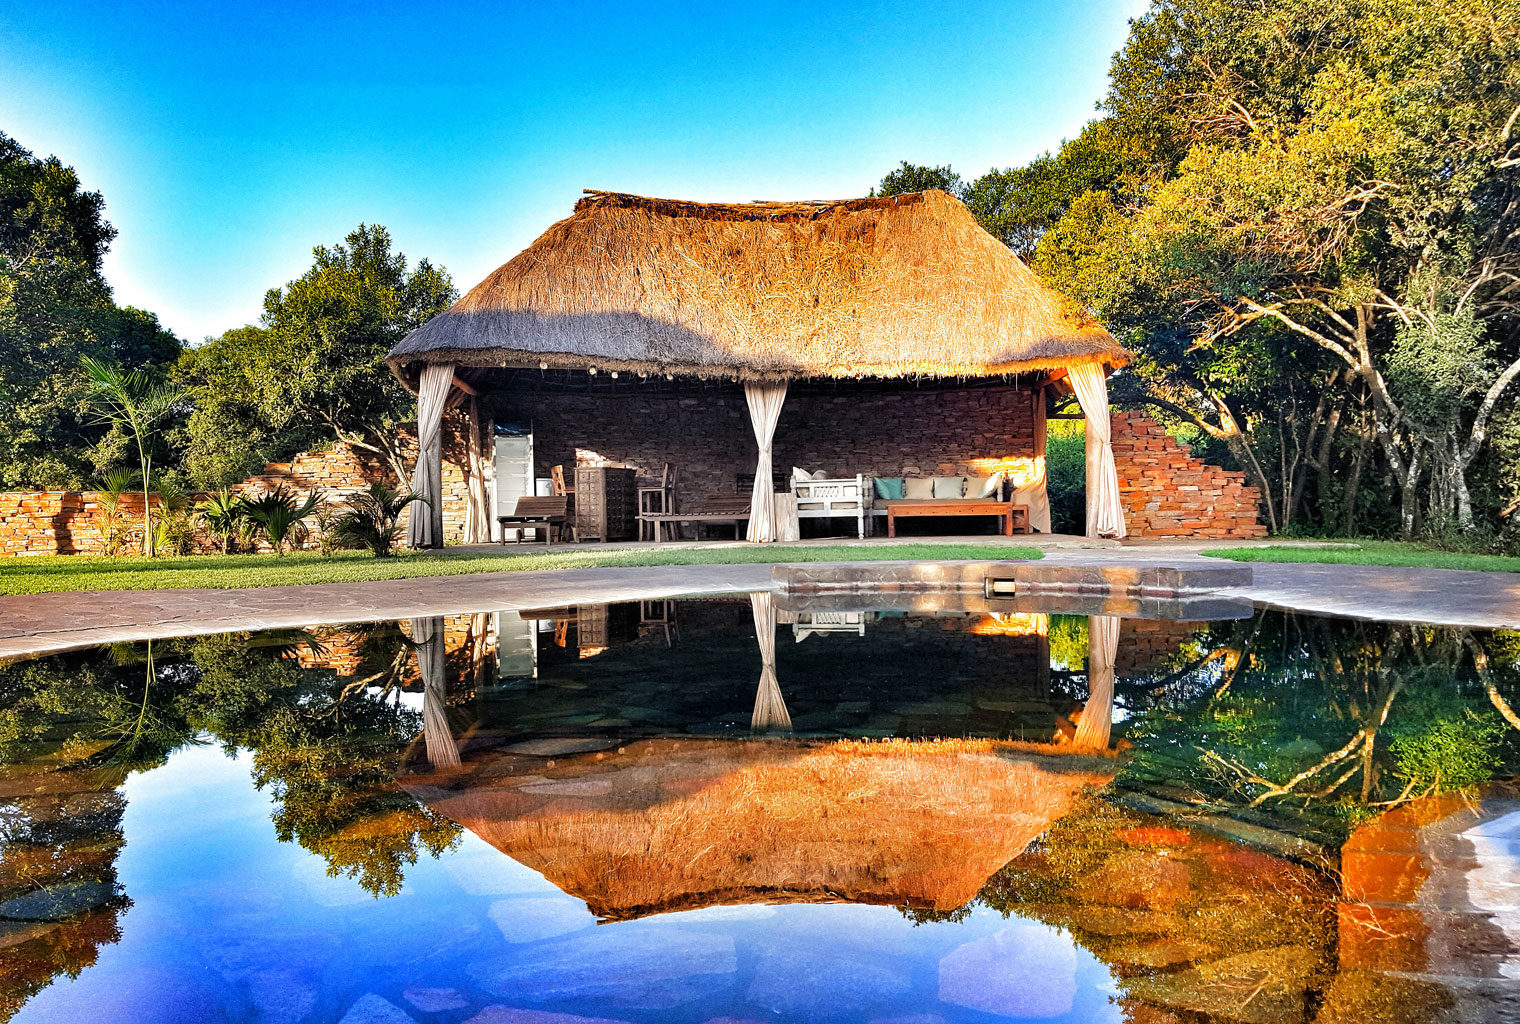 House-In-The-Wild-Exterior-Pond-Kenya